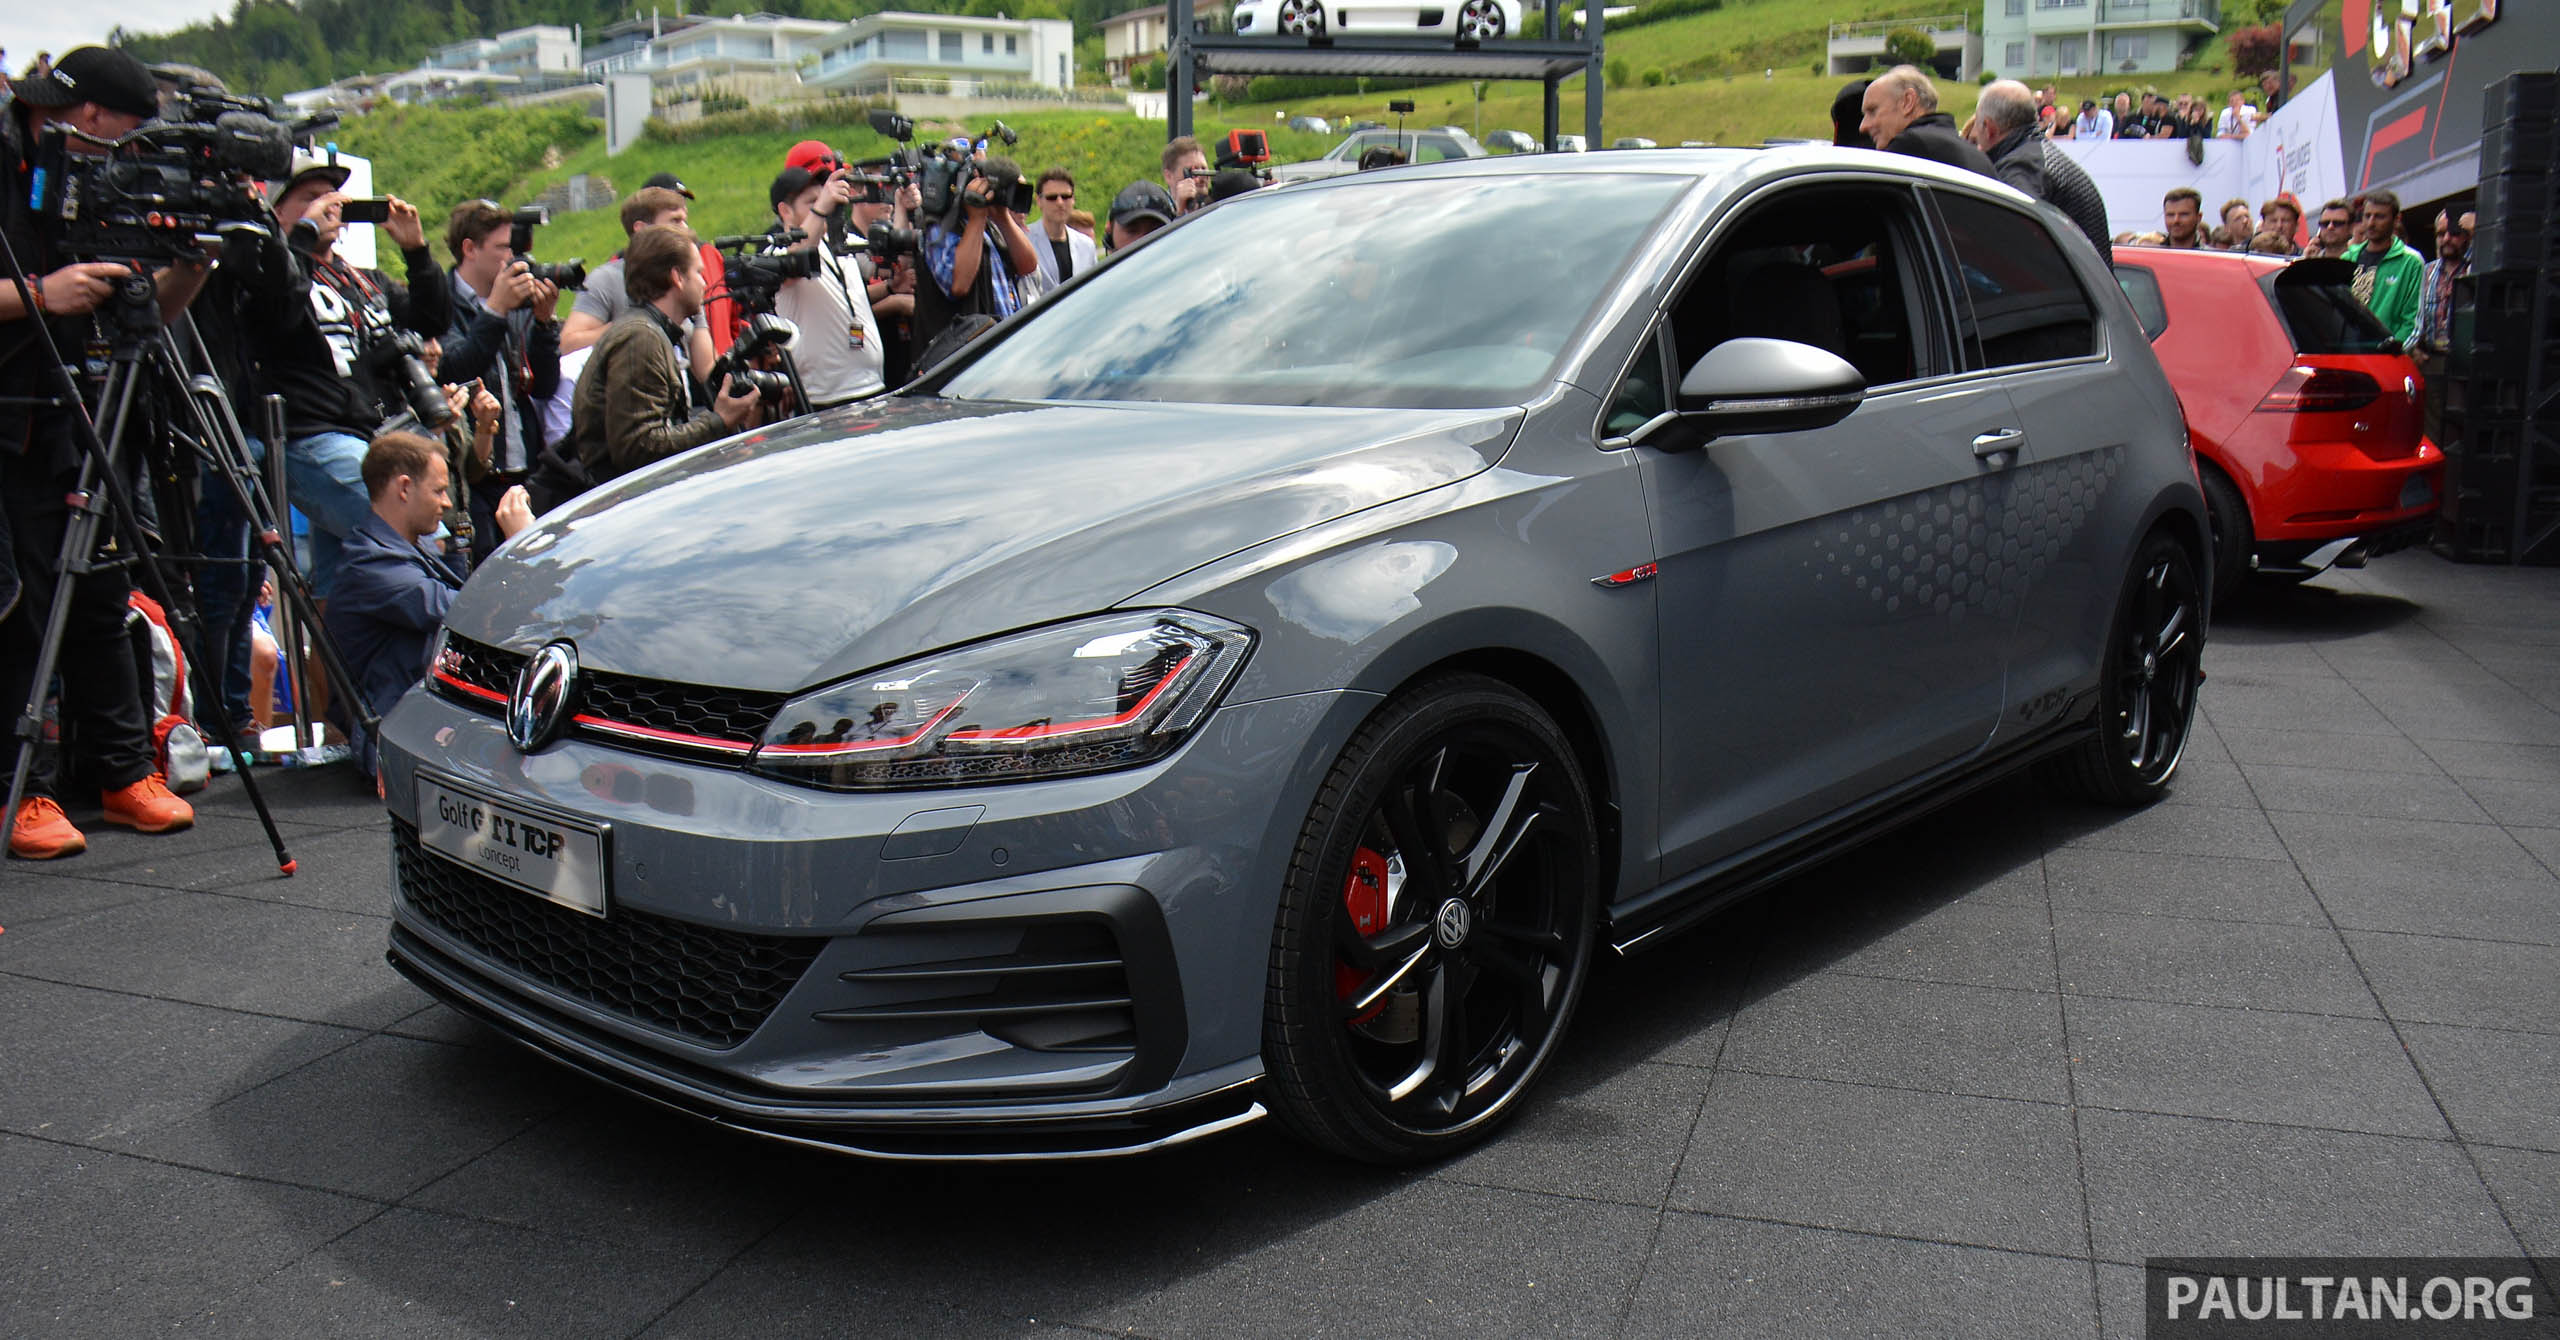 Volkswagen Golf Gti Tcr Concept Officially Debuts At Wortherseetreffen 2 0l Tsi Engine 290 Ps 264 Km H Paultan Org